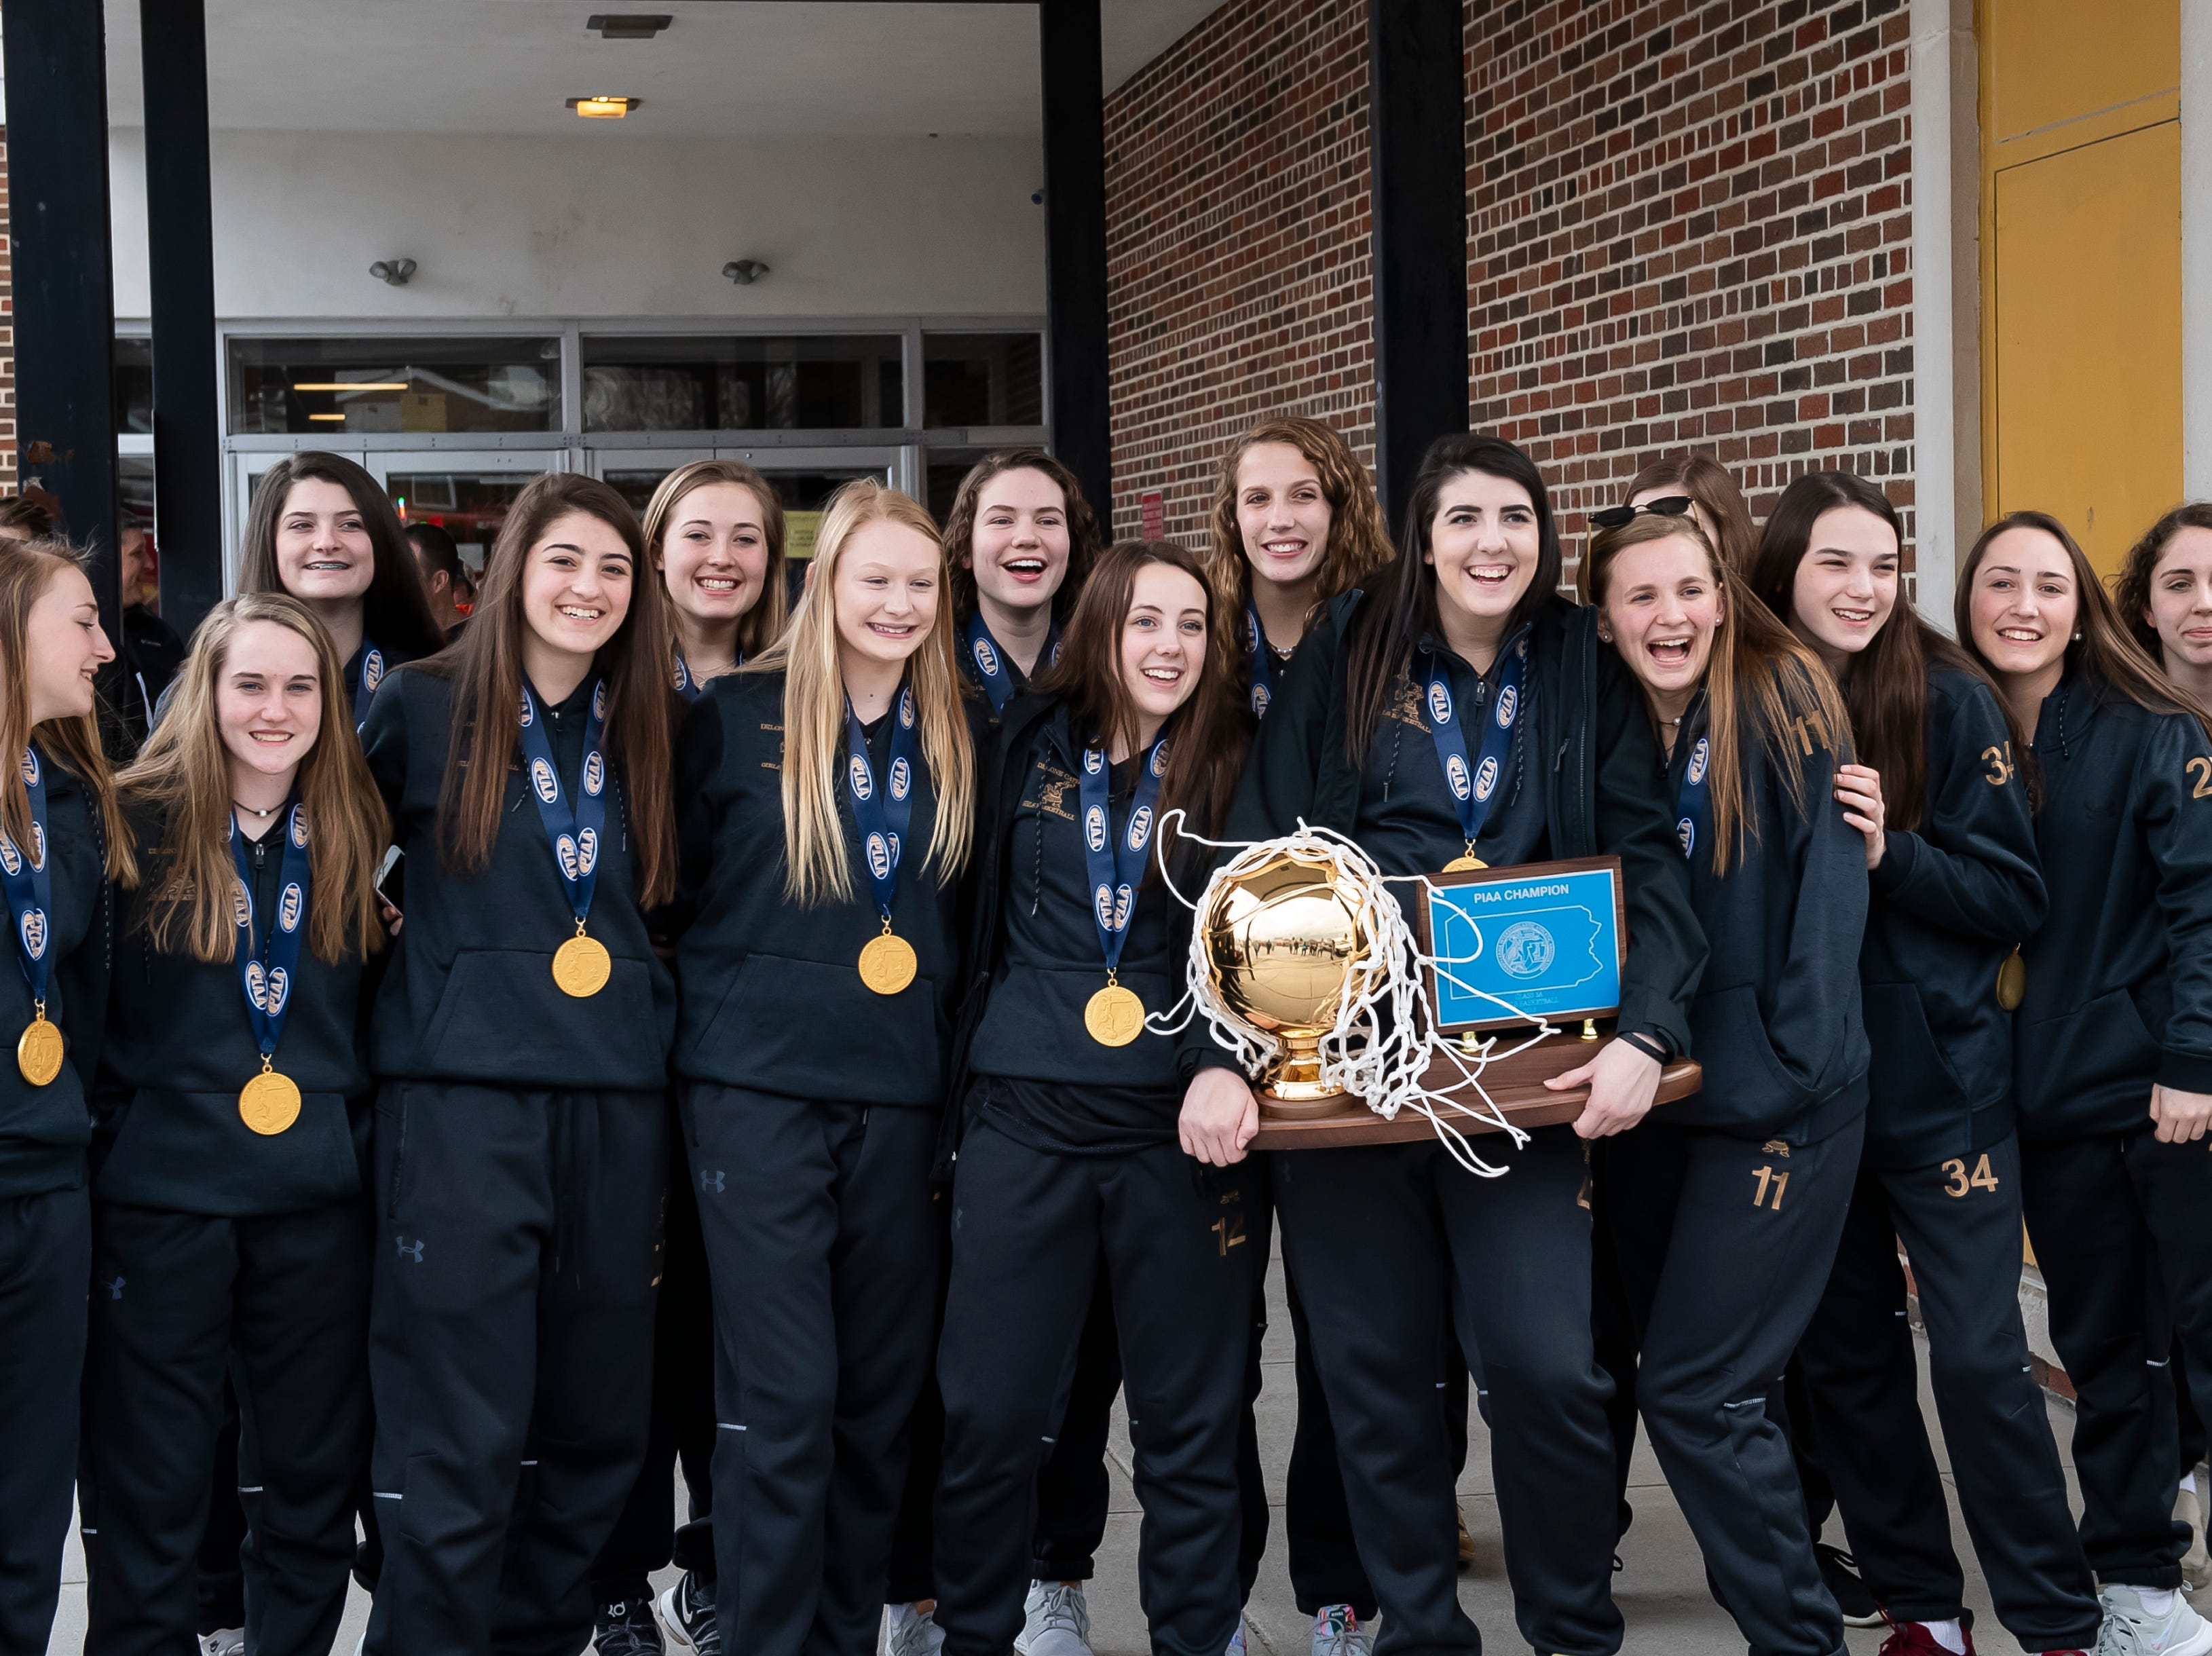 Members of the Delone Catholic 2018-2019 girls basketball team pose for photos before the start of a parade in McSherrystown celebrating their PIAA championship on Thursday, March 28, 2019.